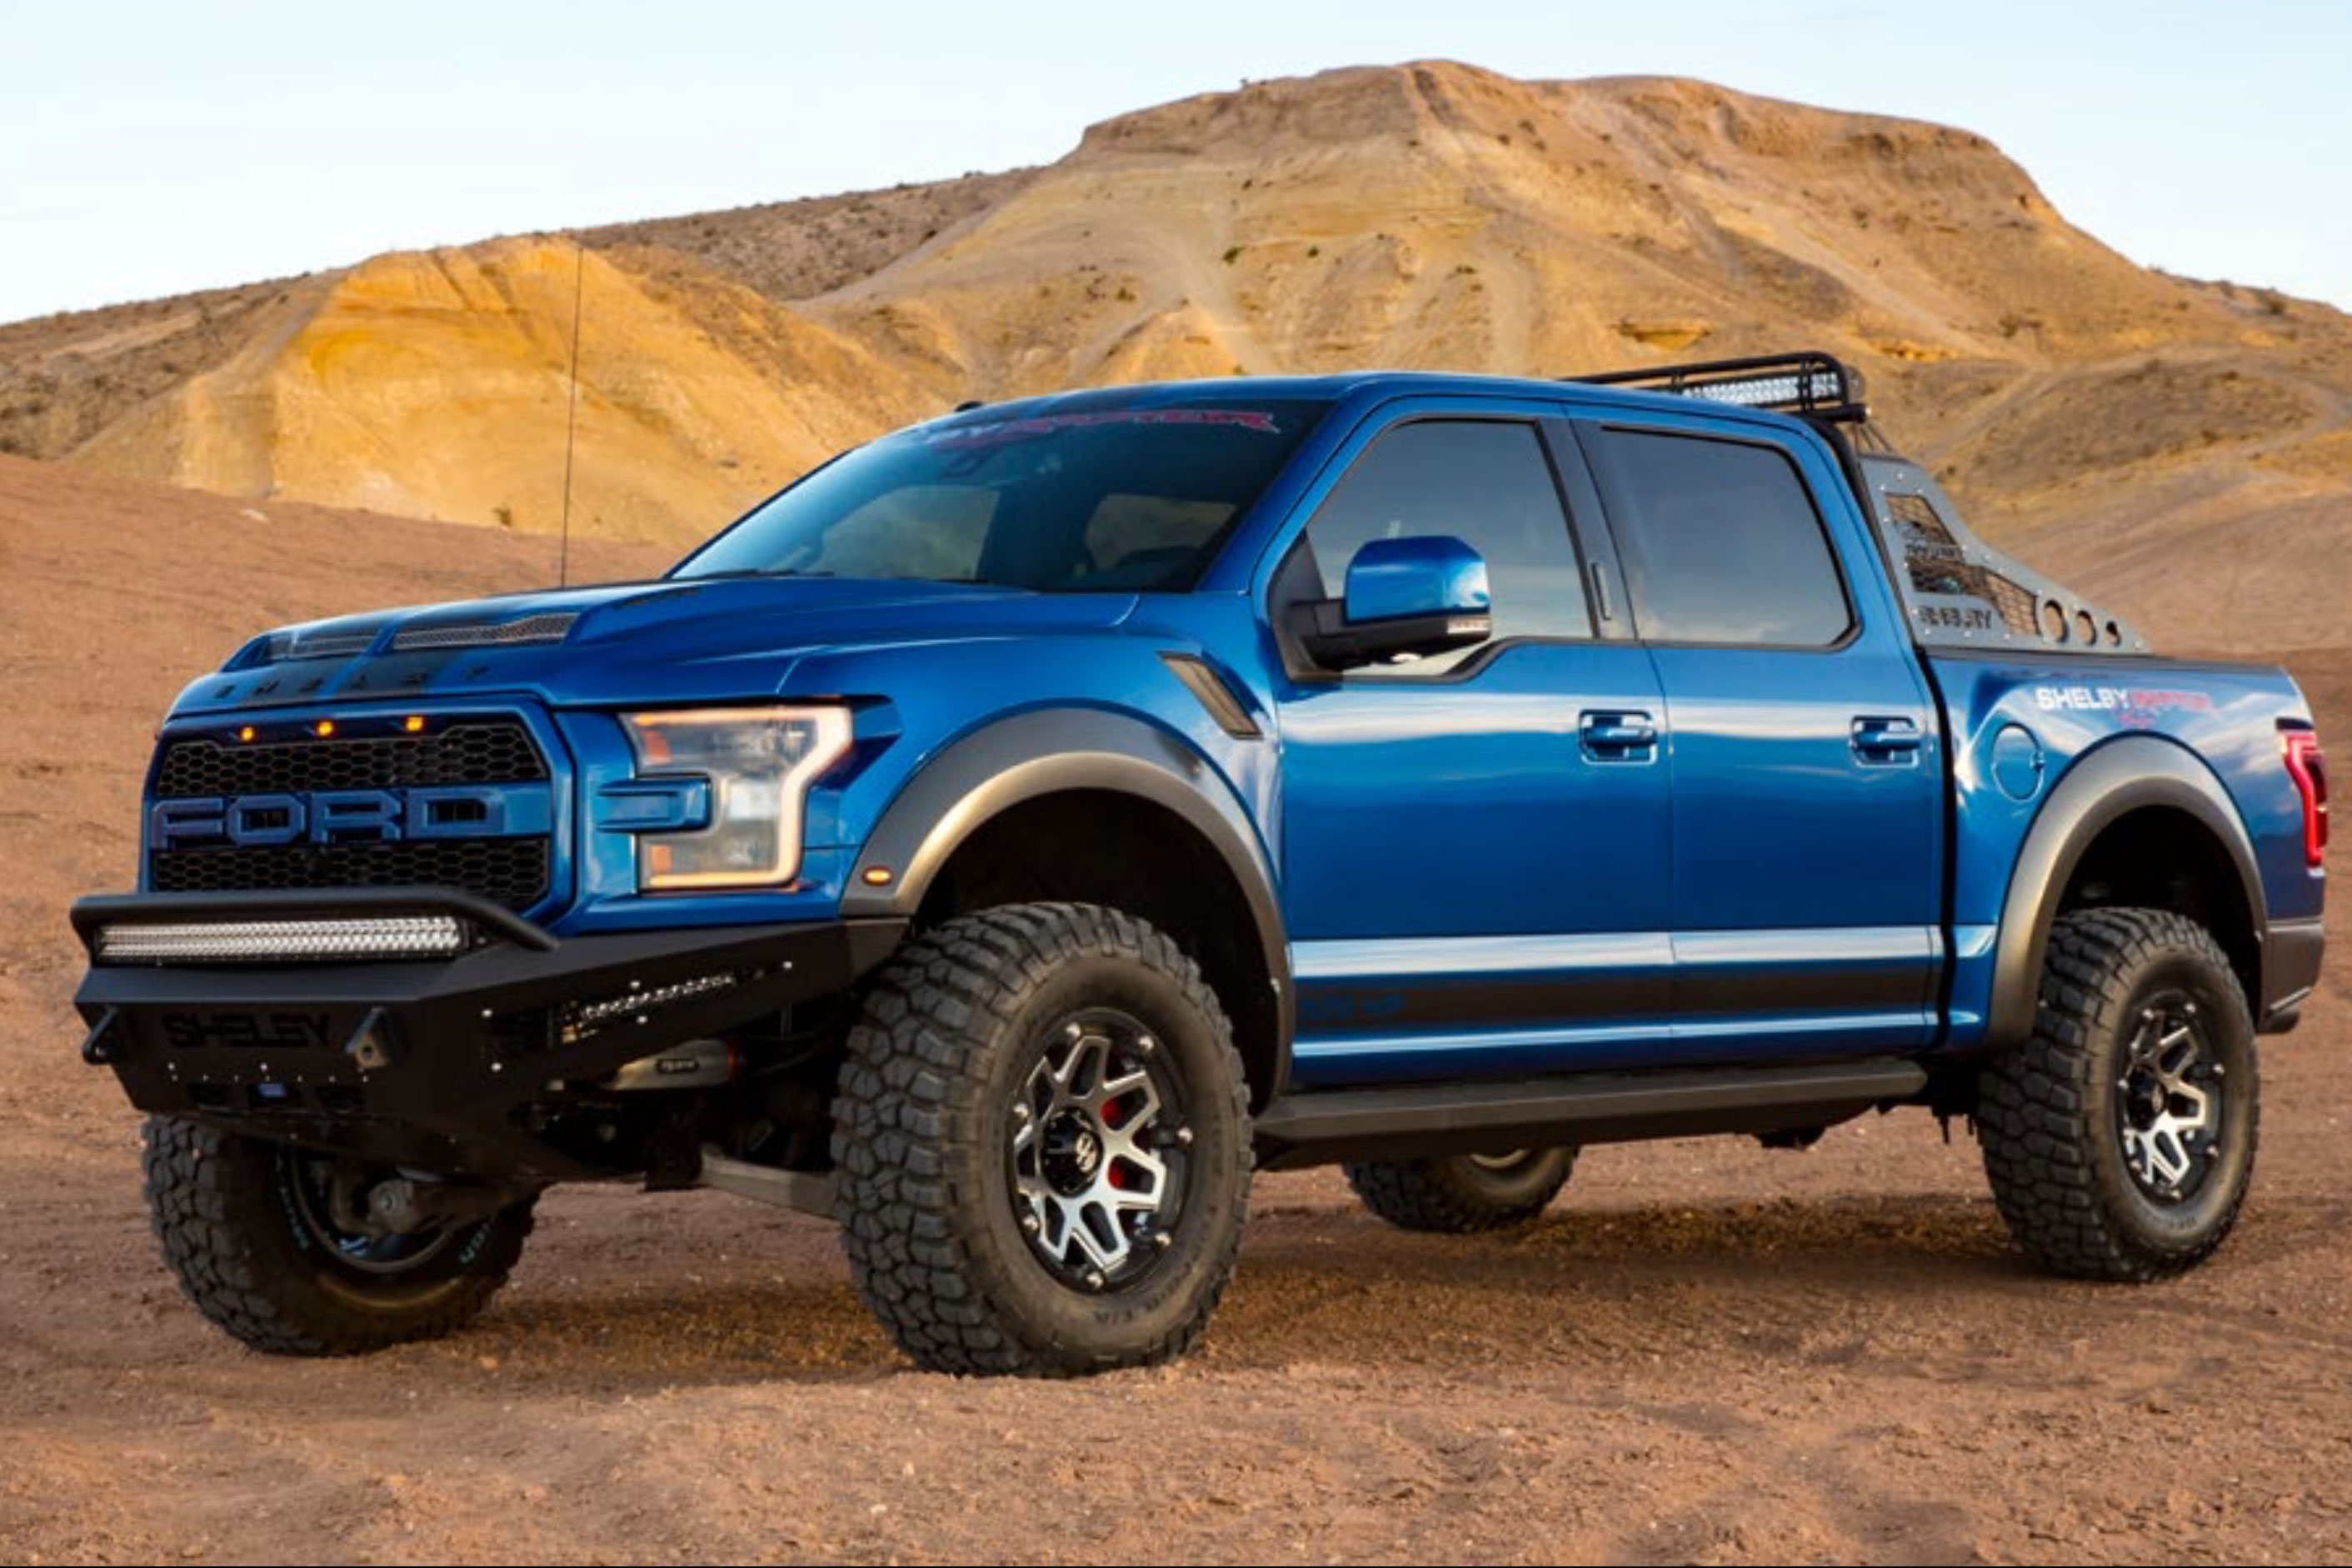 Ford F150 Shelby 2017 >> New Shelby Raptor Released - Pony Press - Mustang Motorsport Australia